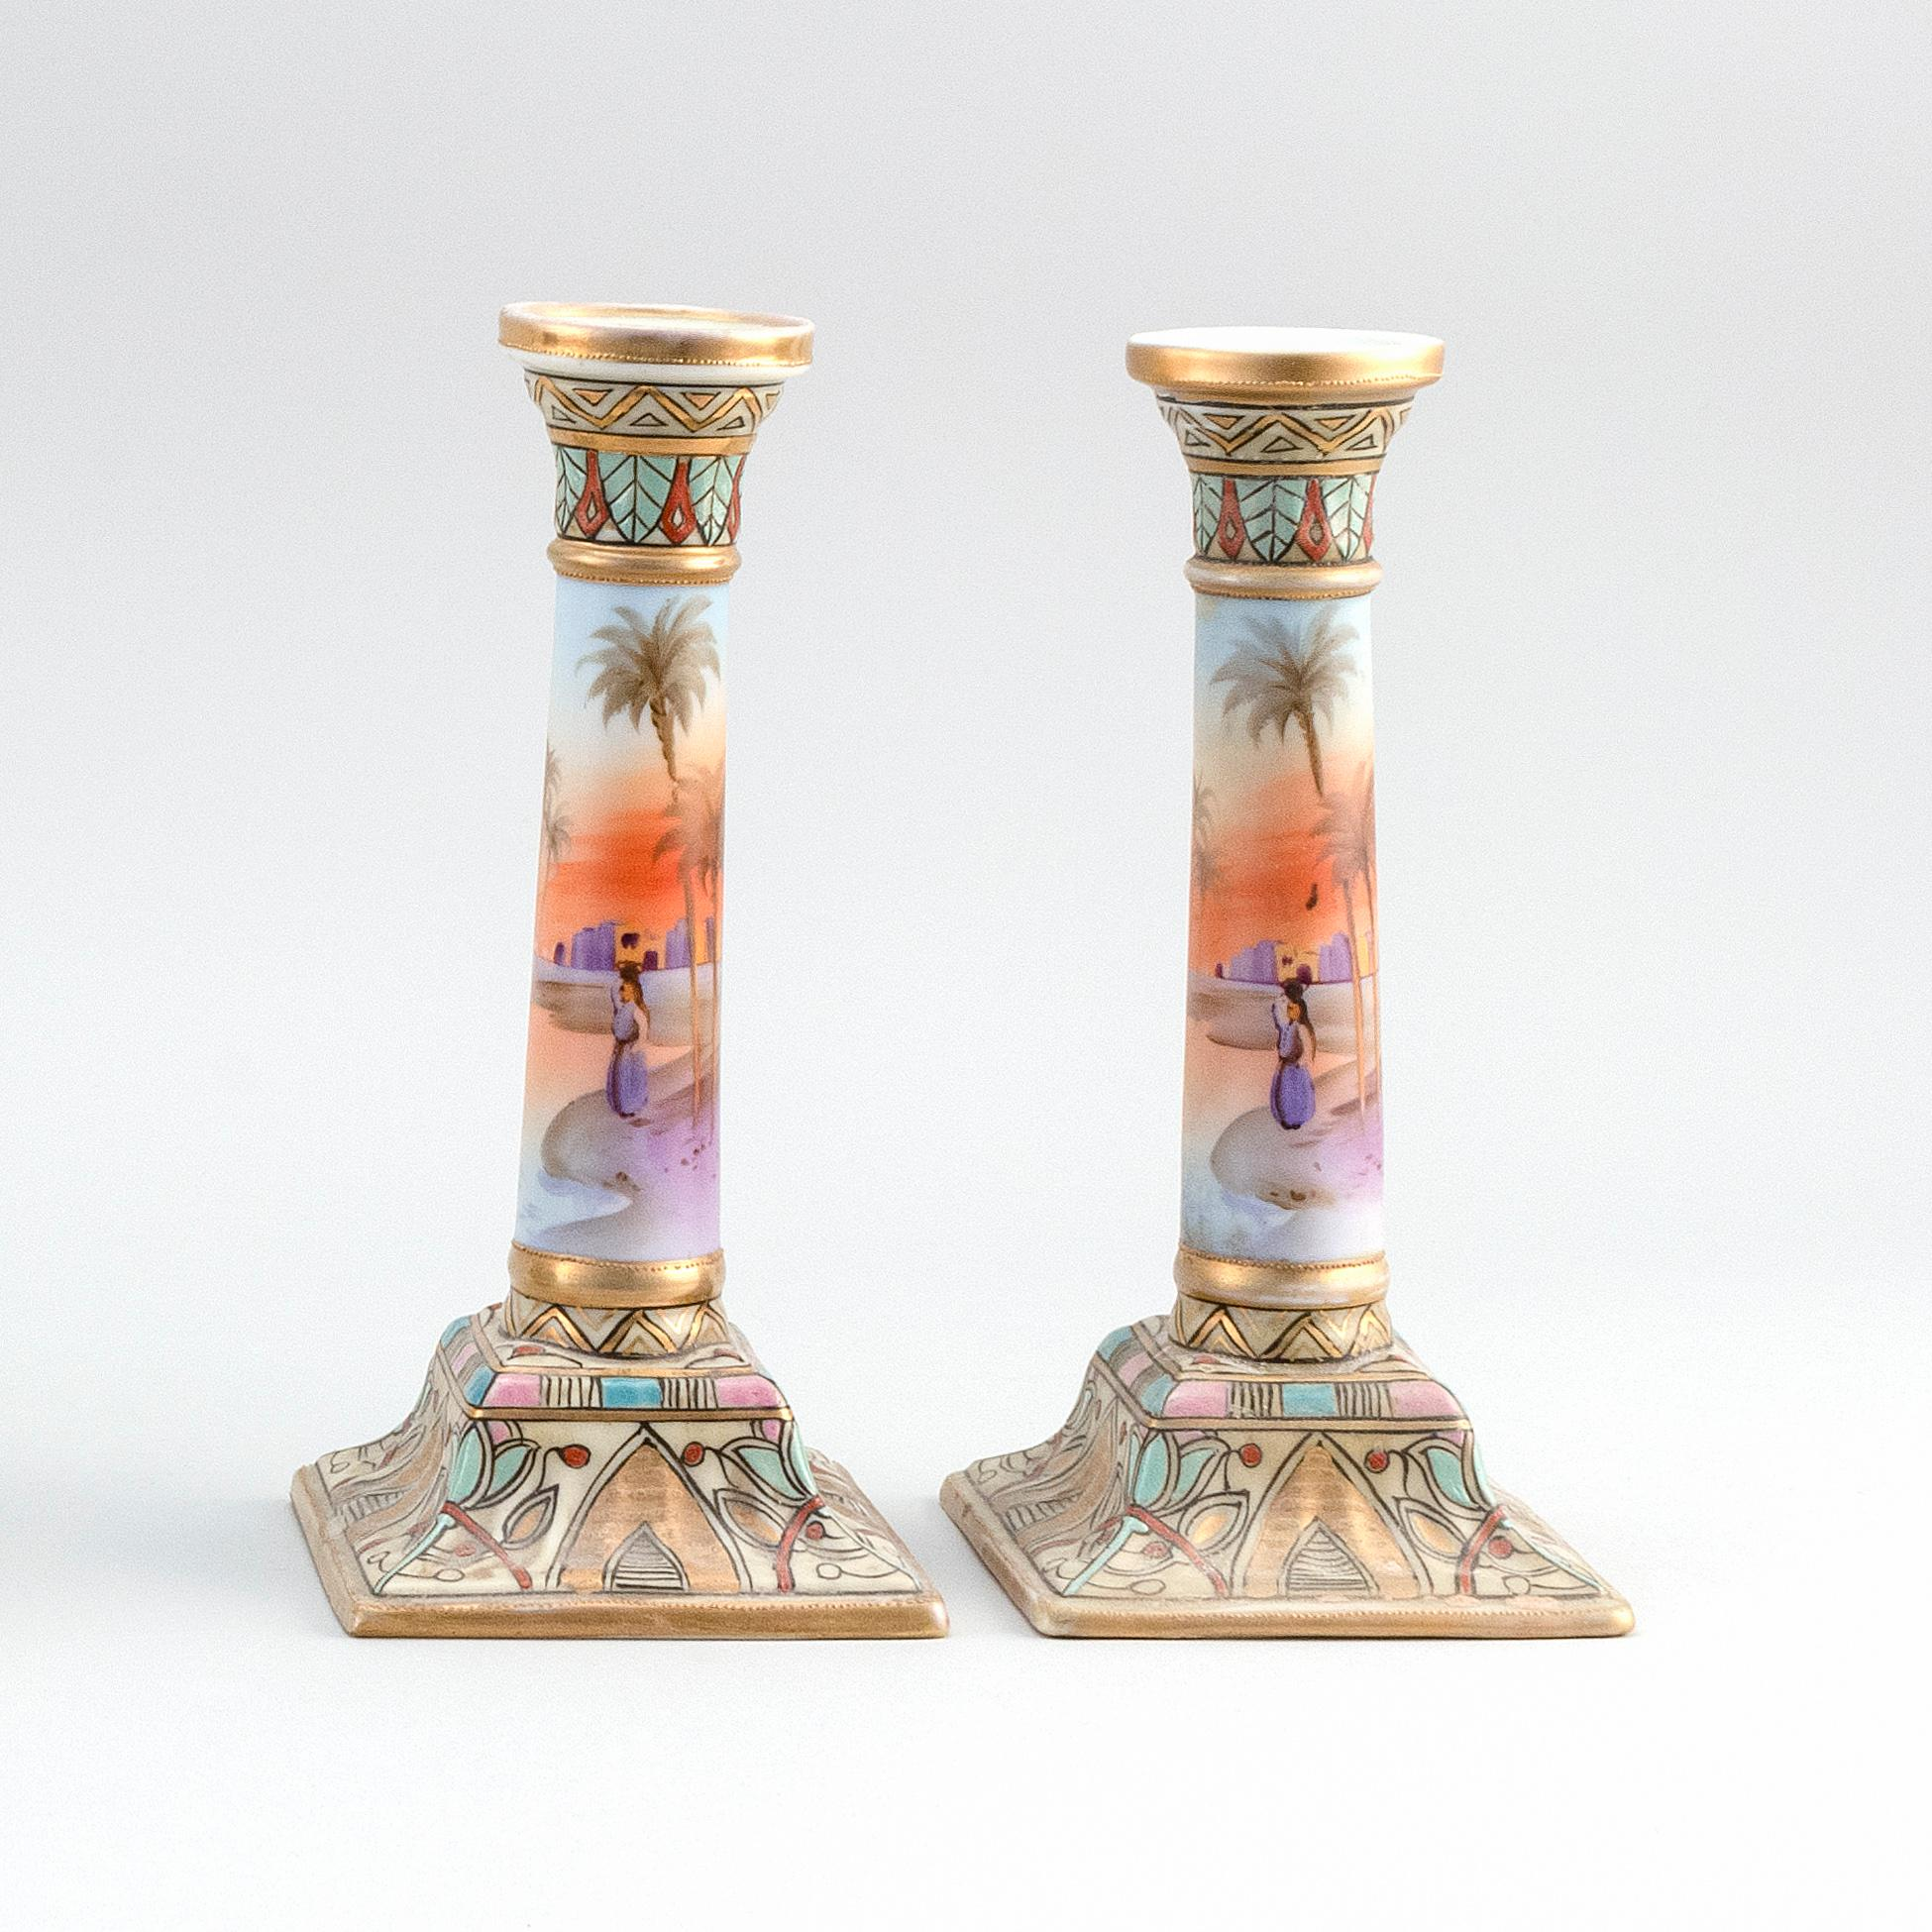 """PAIR OF NIPPON PORCELAIN CANDLESTICKS With Egyptian landscape decoration. Van Patten #47 mark on bases. Heights 9.2""""."""